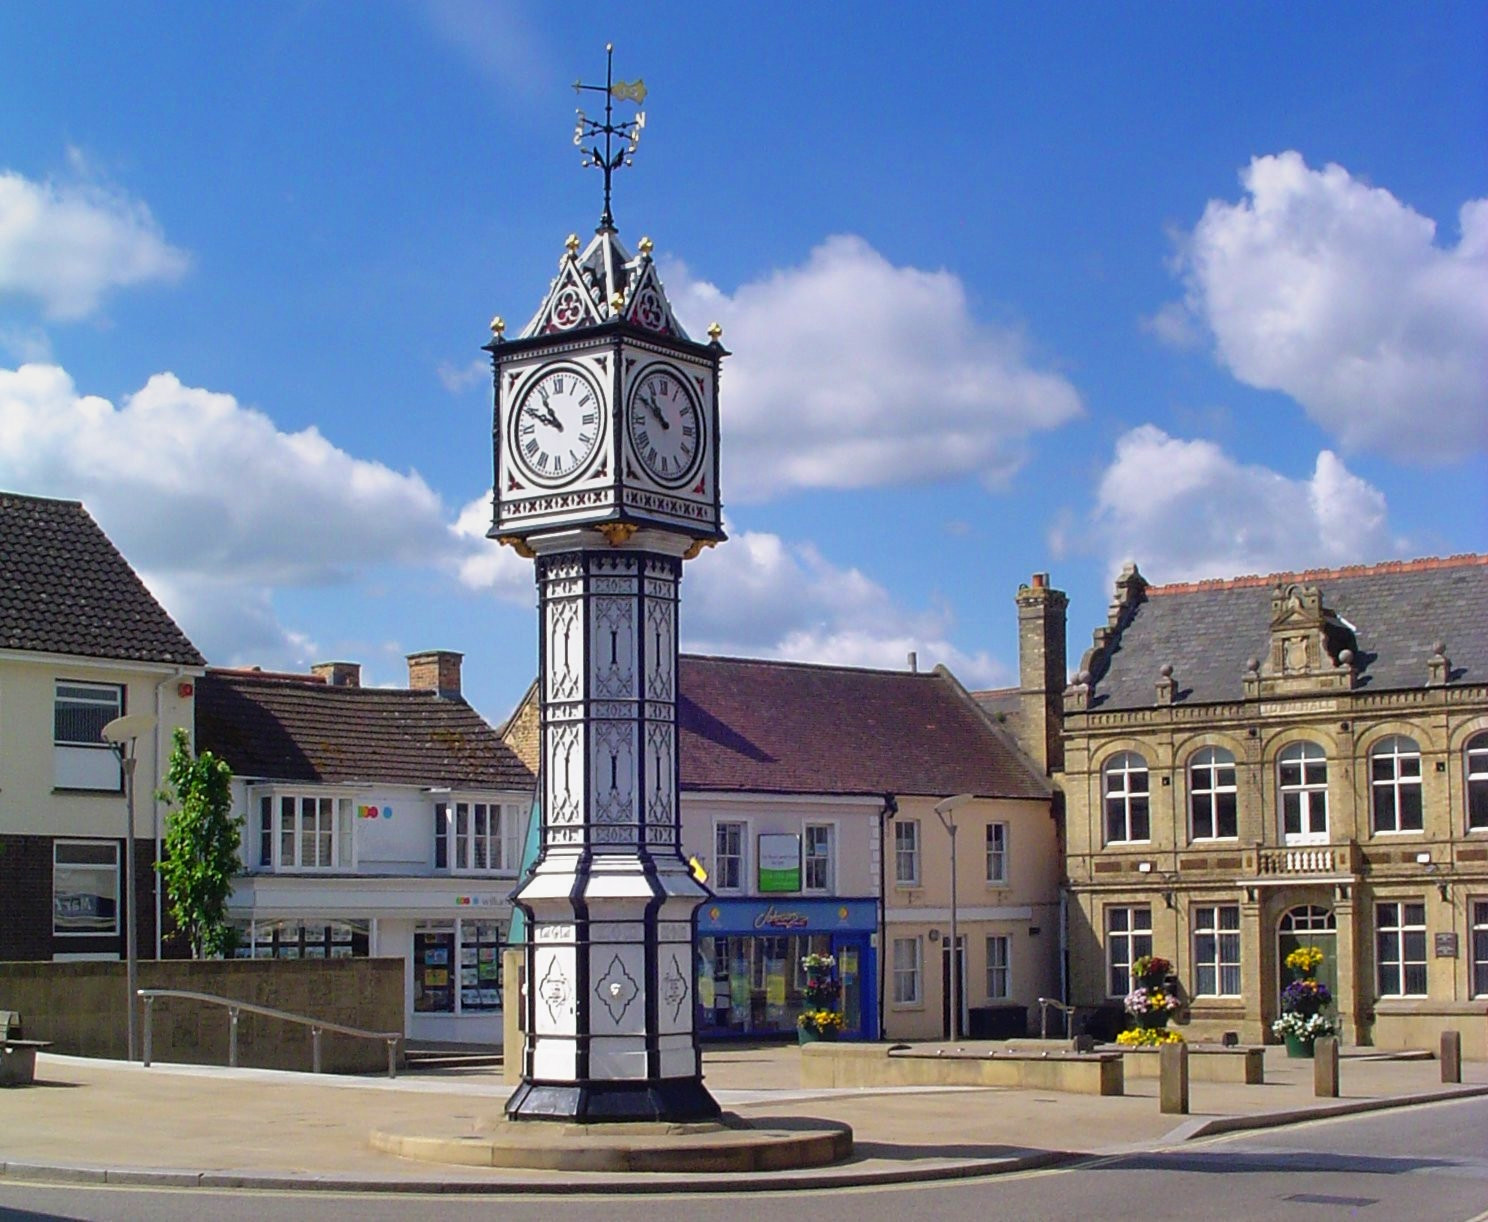 Clock Tower in Downham Market, Norfolk. Credit Uksignpix